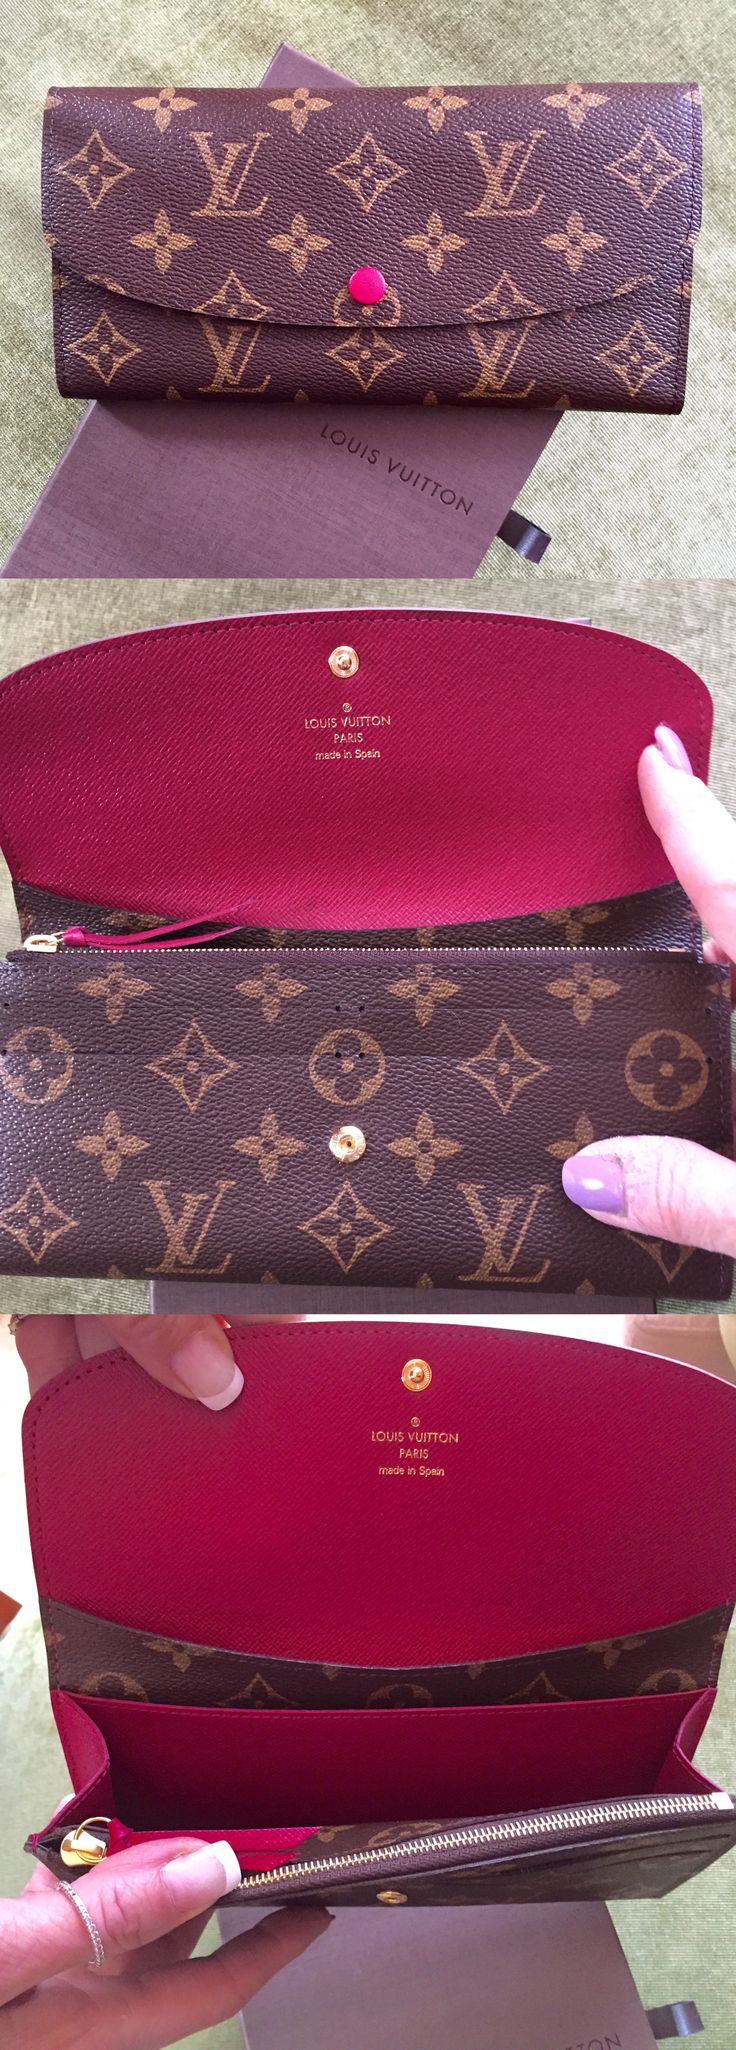 Louis Vuitton Emilie Wallet in fuchsia. Love it - and it holds my iPhone 6. Lovely wallet!